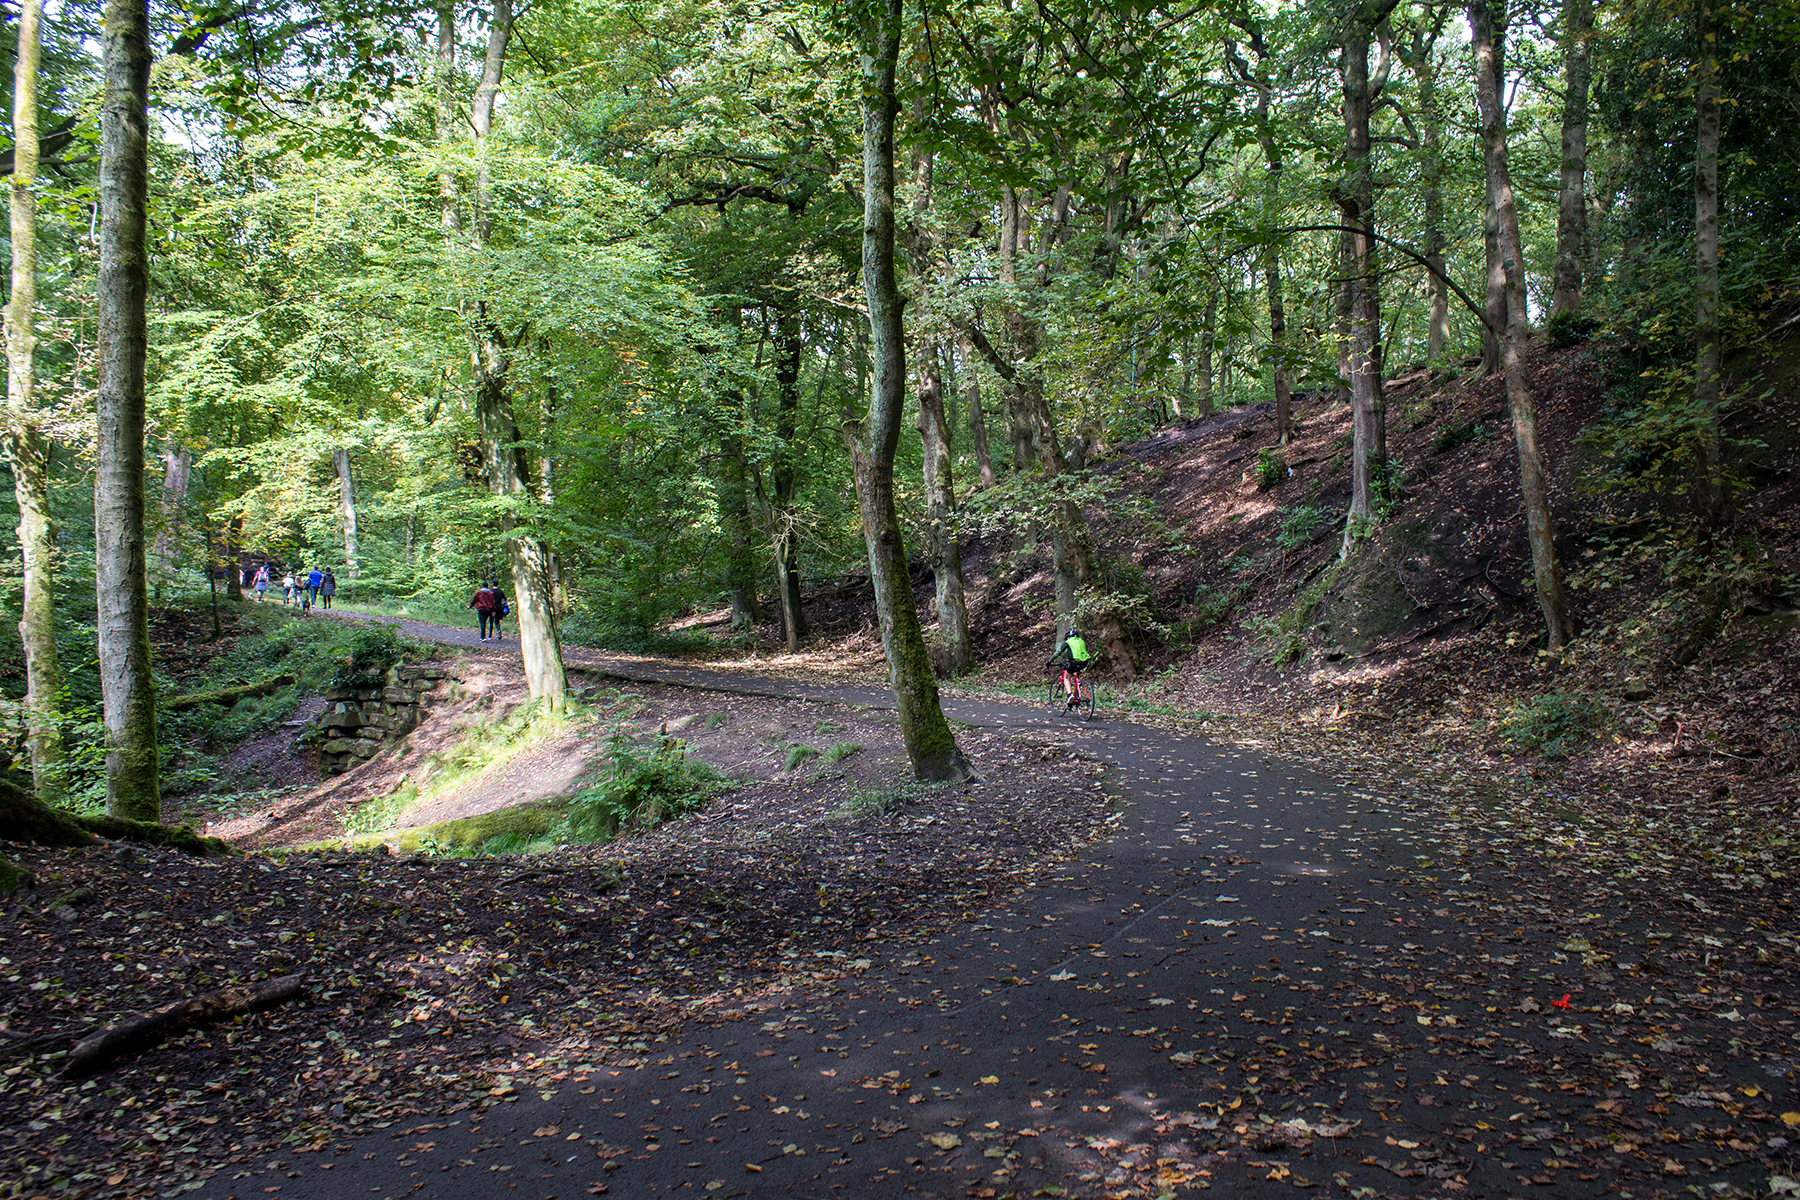 Woodland Walk to Haigh Hall | Up The Hill